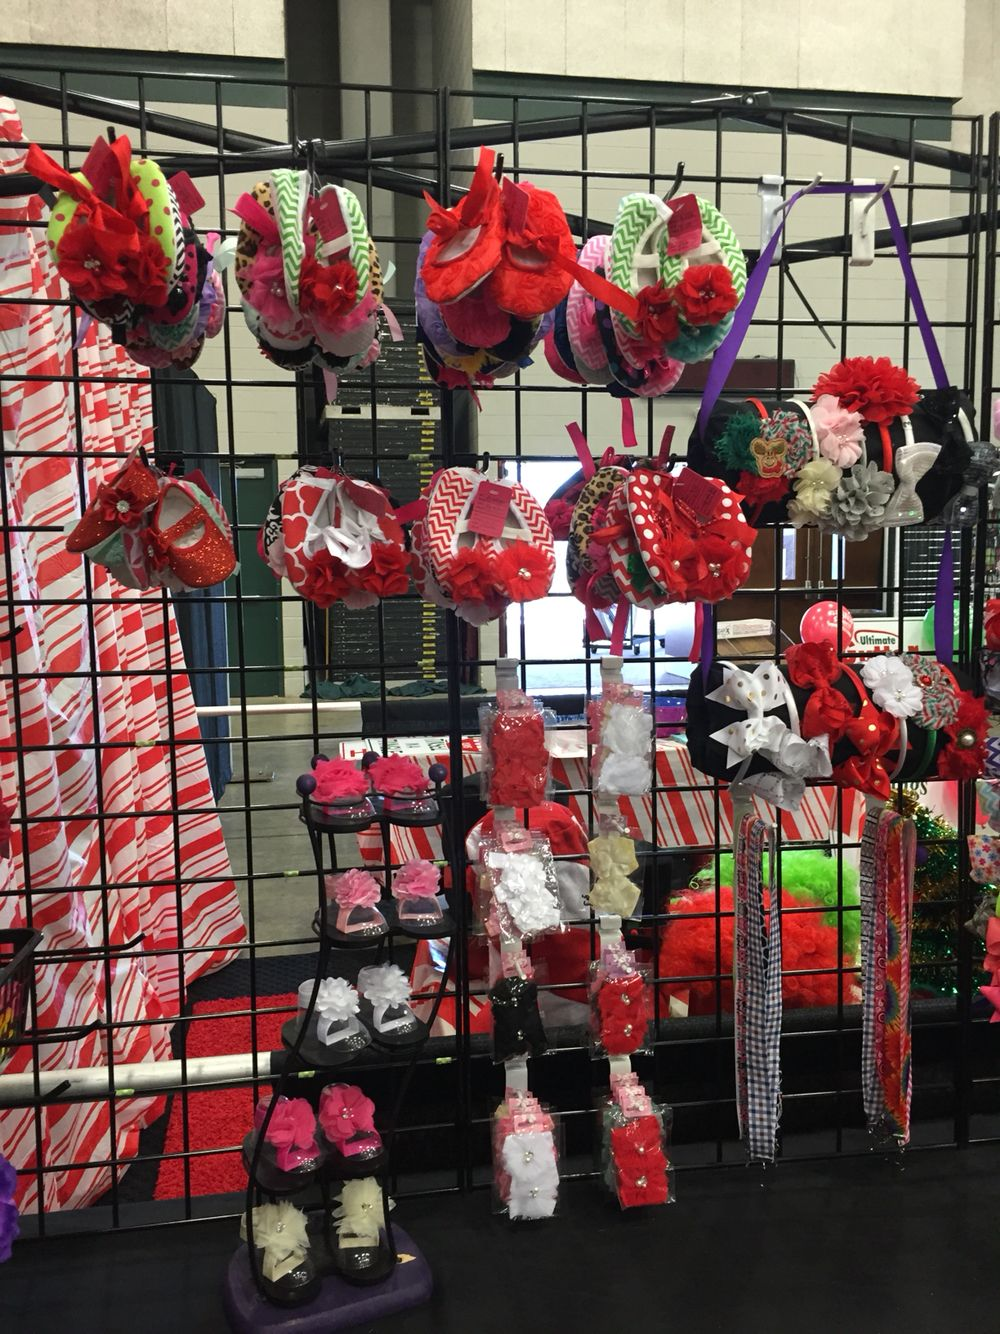 Christmas Craft Show Booth Ideas Part - 33: Vendor Booth Holiday Craft Fair Booth Setup Display Ideas Crafter 10x10 CD  Rack For Baby Shoe